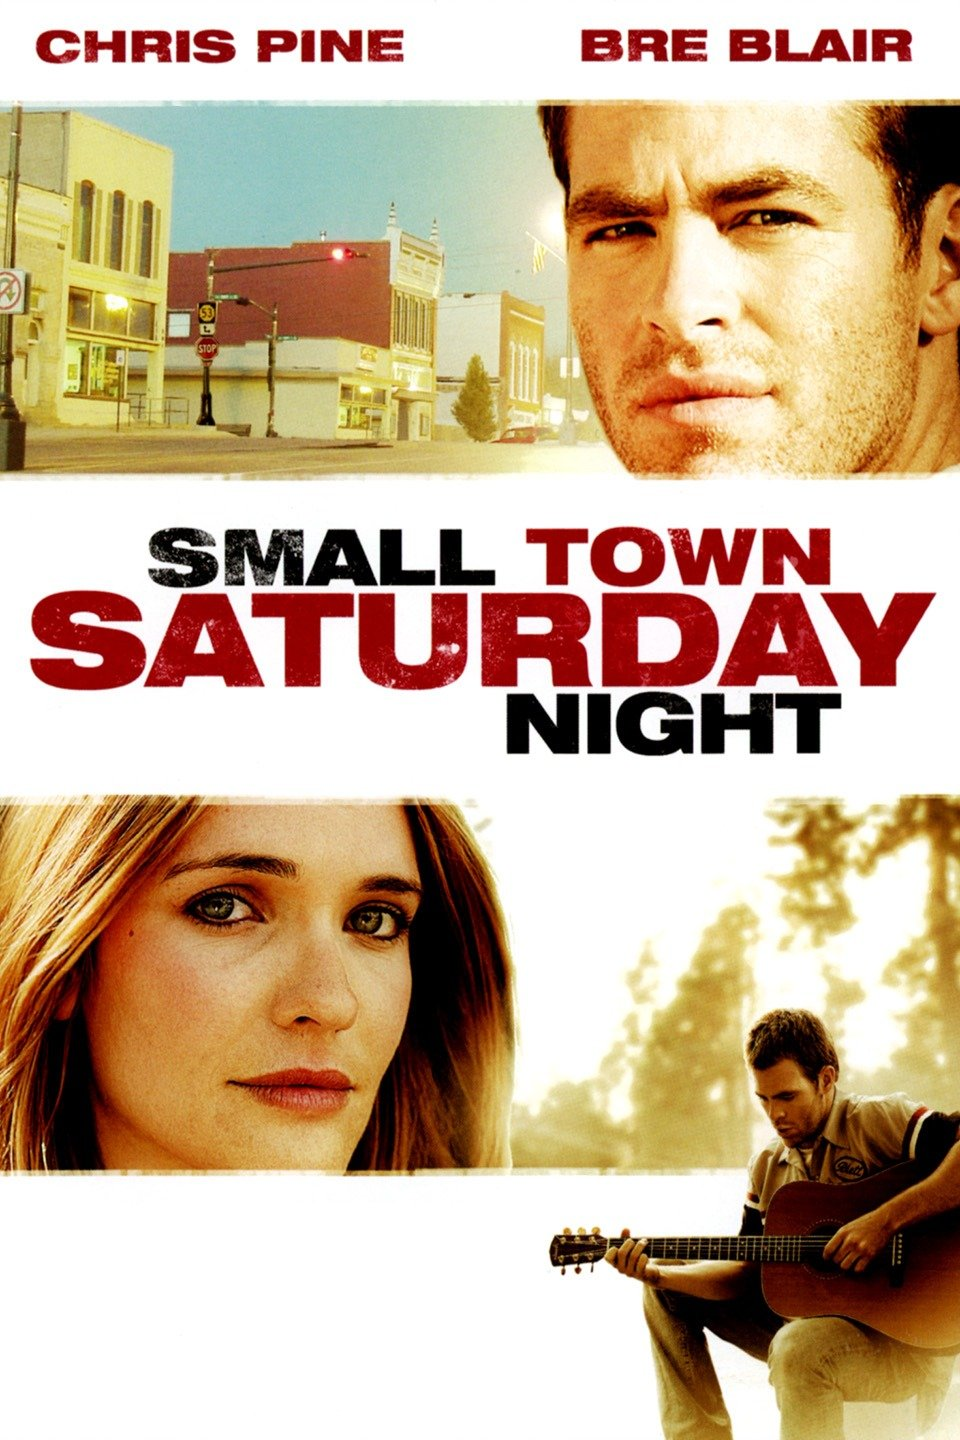 Small Town Saturday Night (2009)